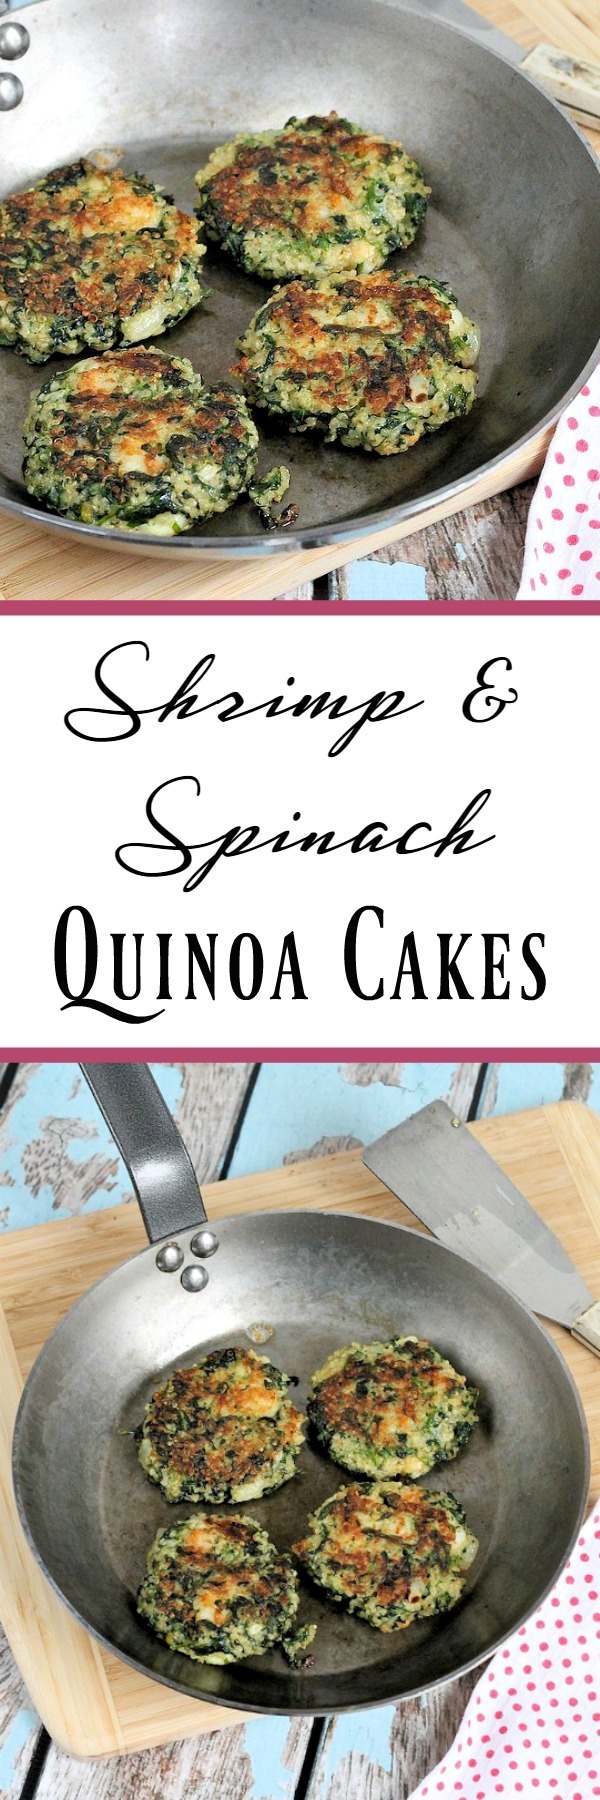 Shrimp & Spinach Quinoa Cakes